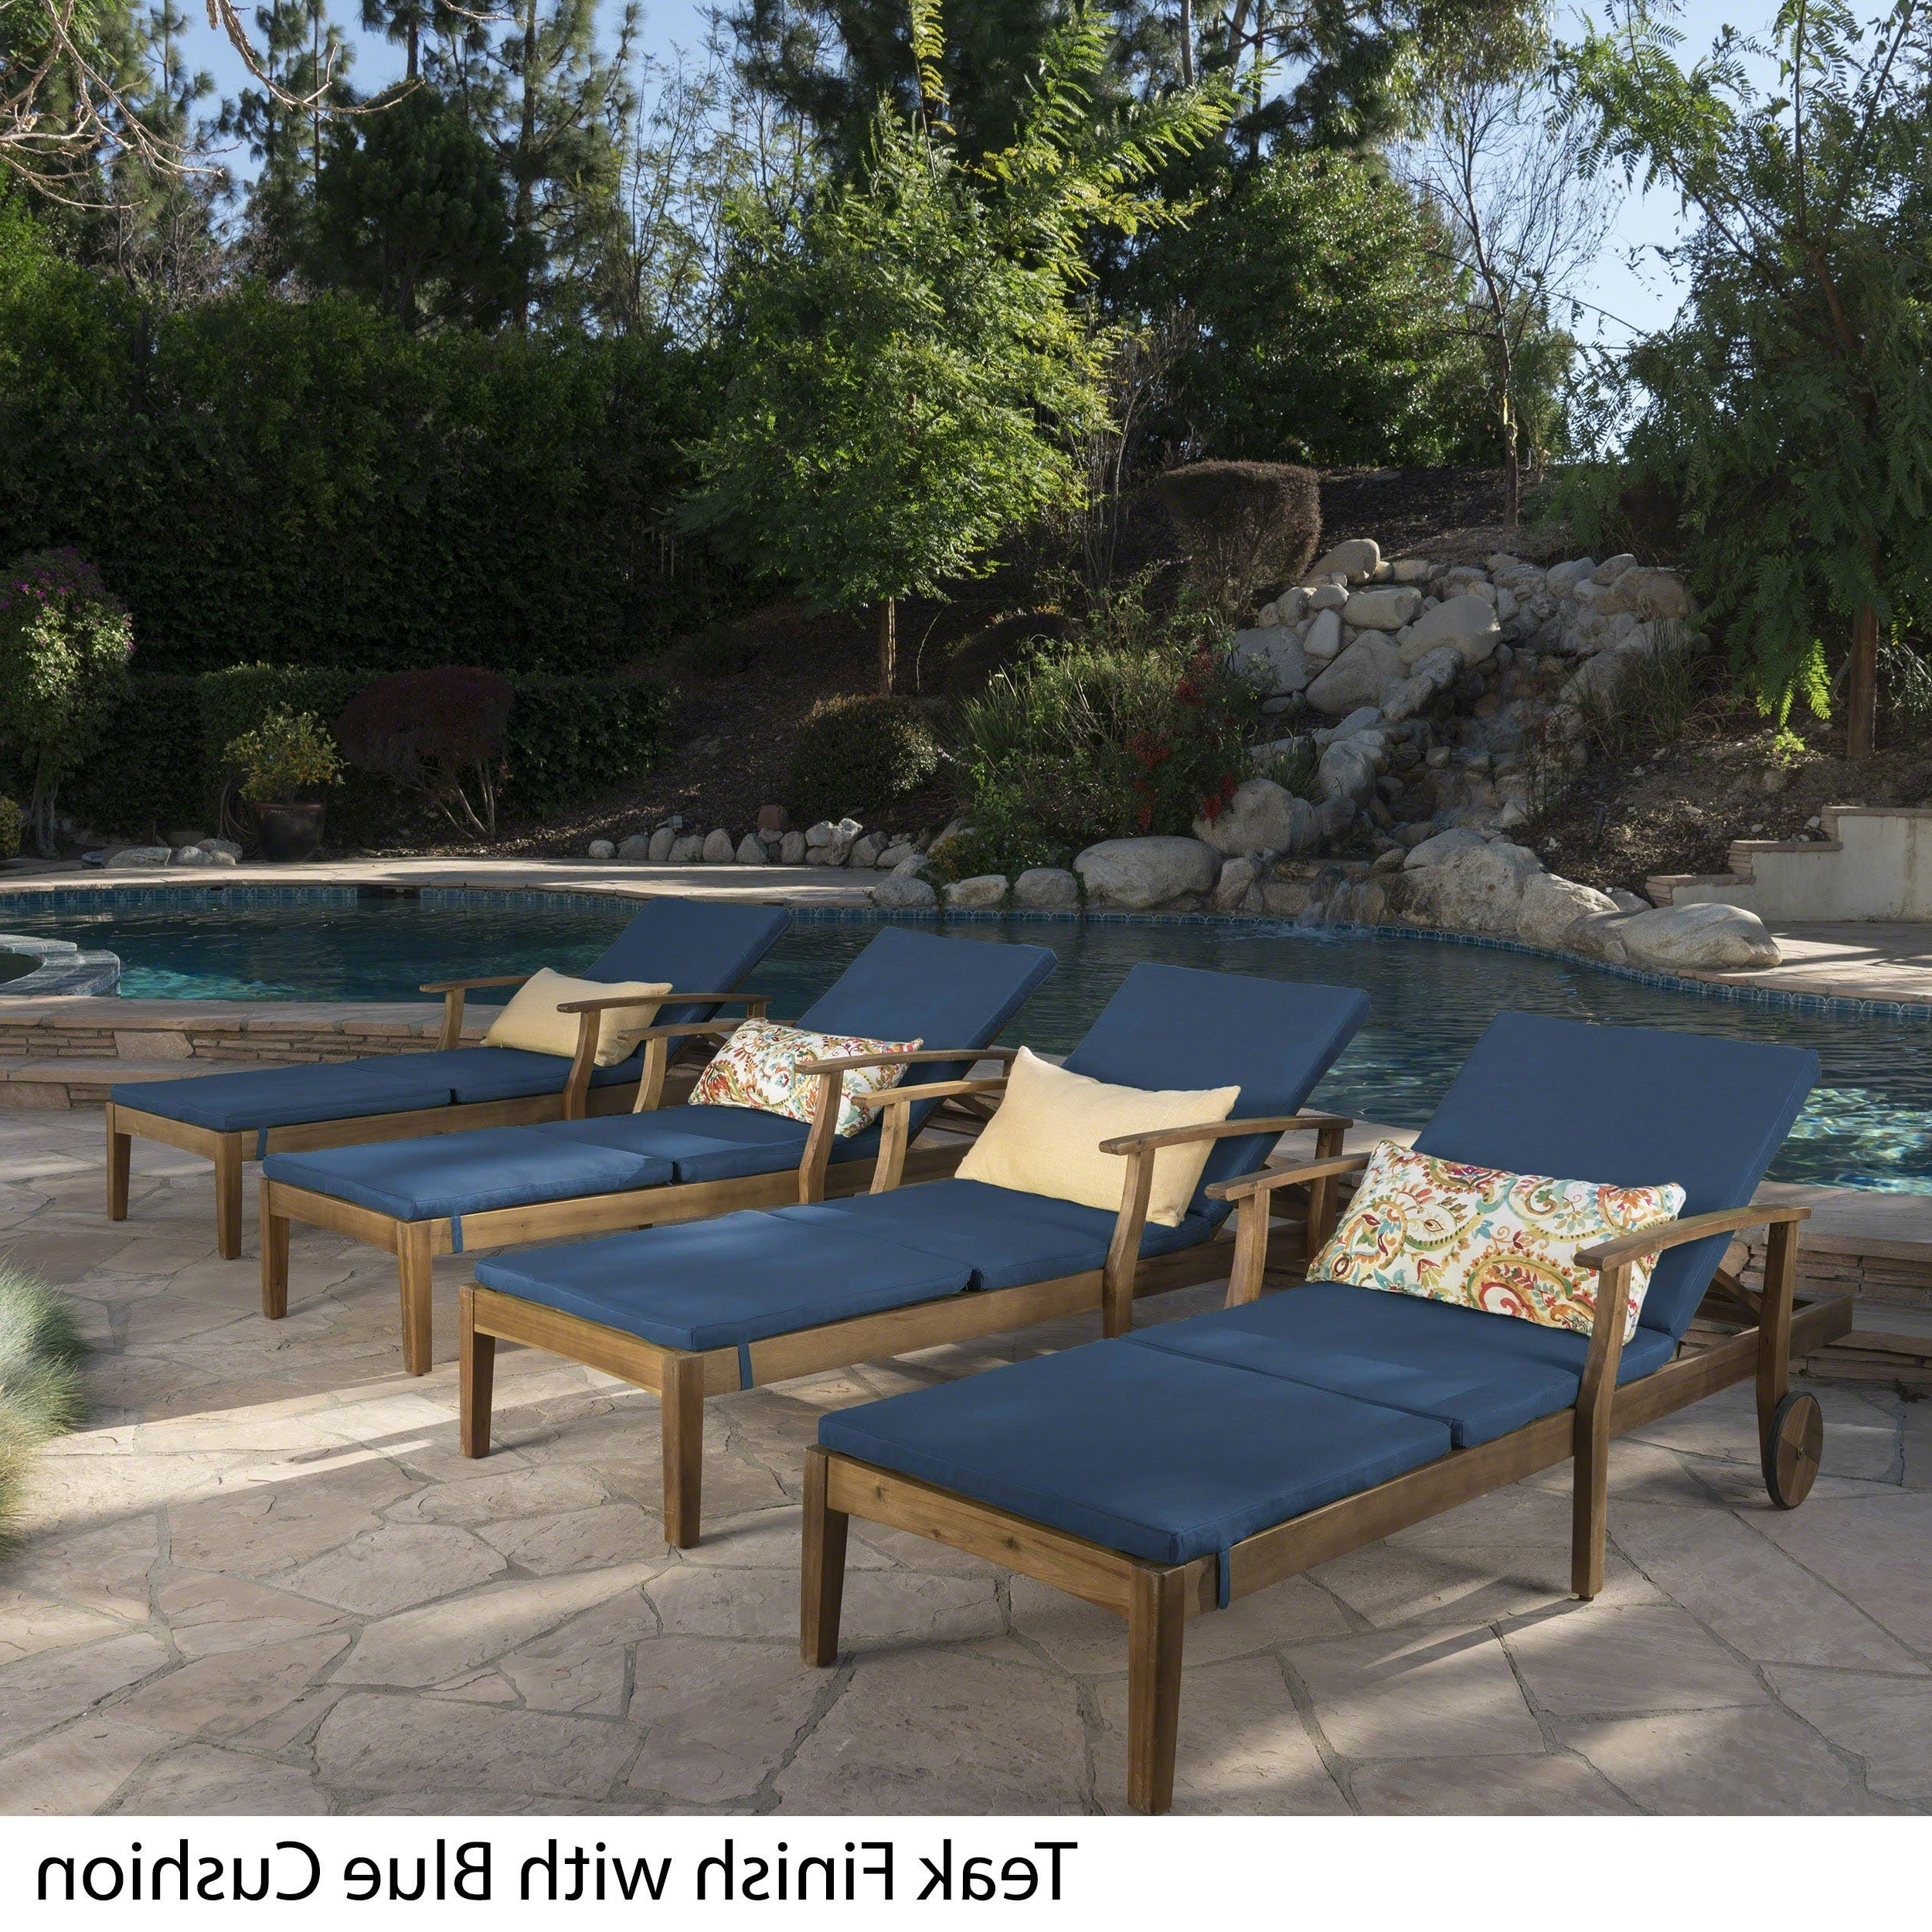 Well Known Perla Outdoor Acacia Wood Chaise Lounge With Cushion Throughout Perla Outdoor Acacia Wood Chaise Lounge With Cushion (Set Of 4) Christopher Knight Home (Gallery 7 of 25)